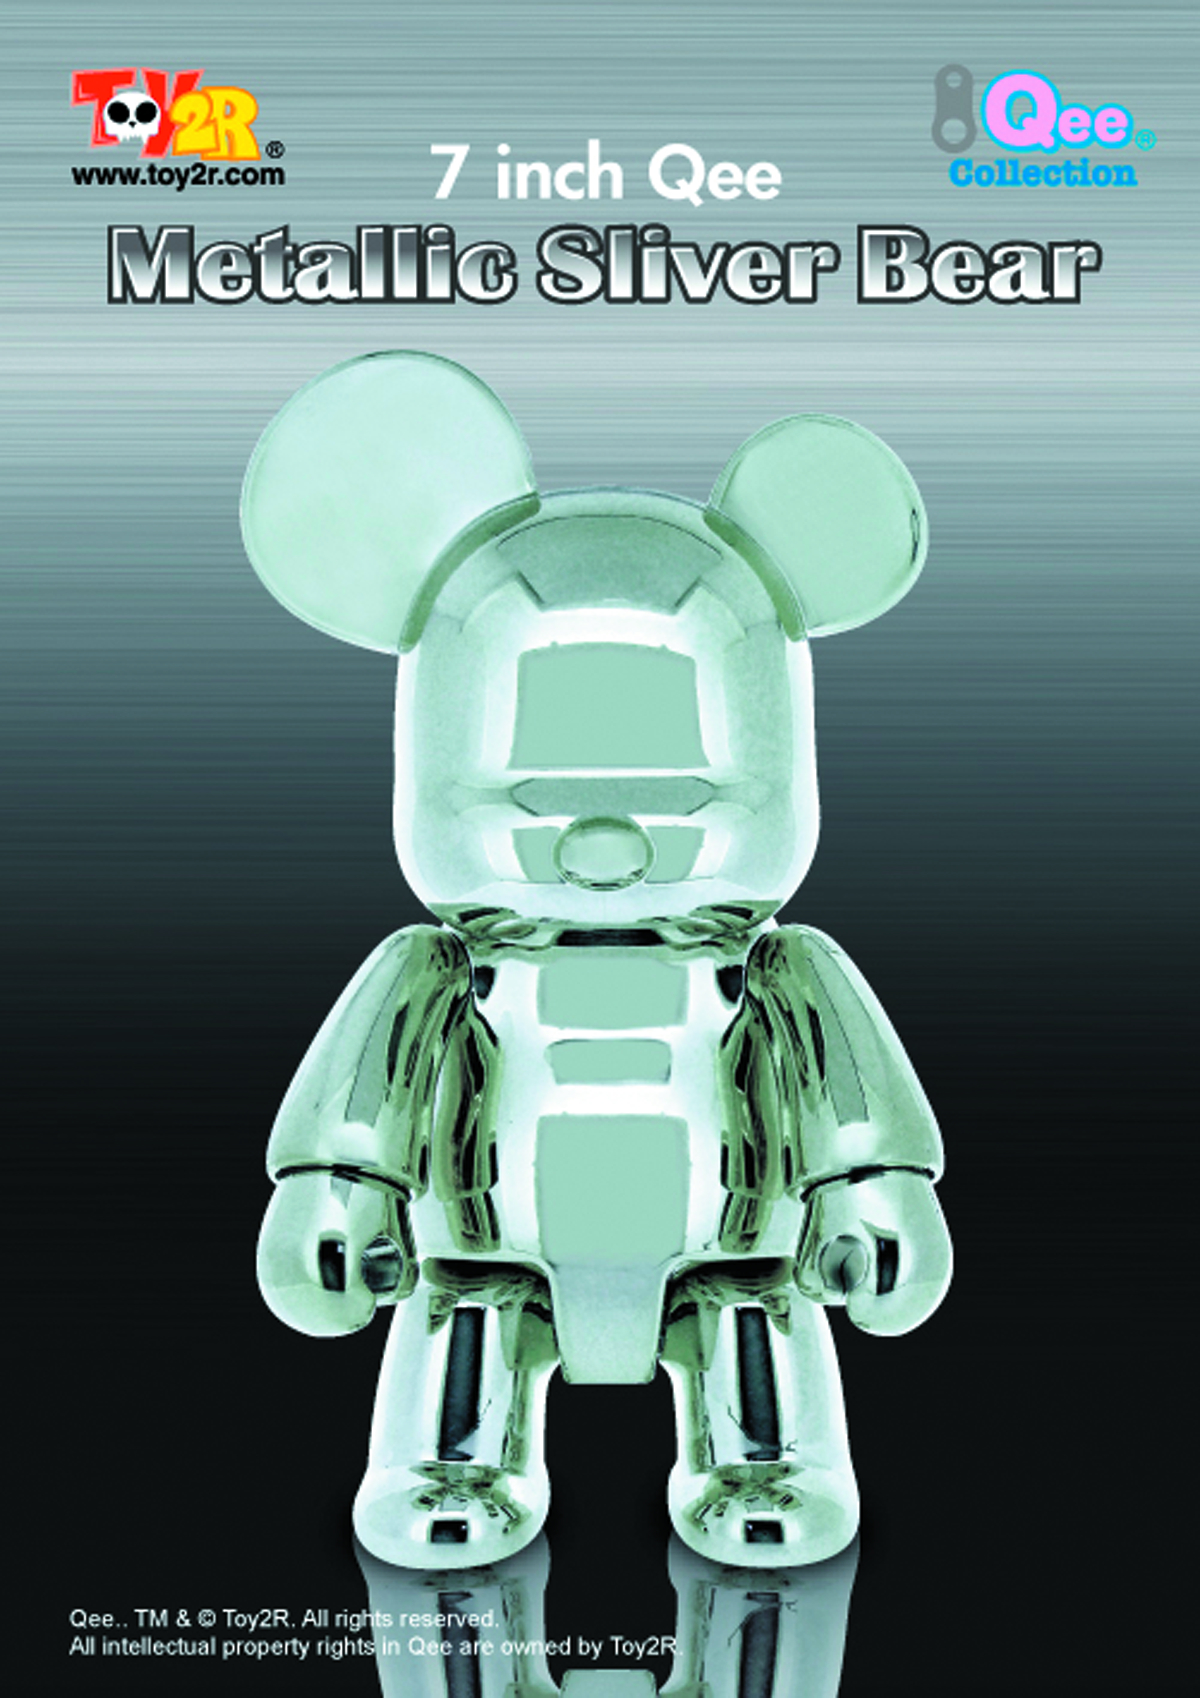 METALLIC SILVER 7IN BEAR QEE VINYL FIG